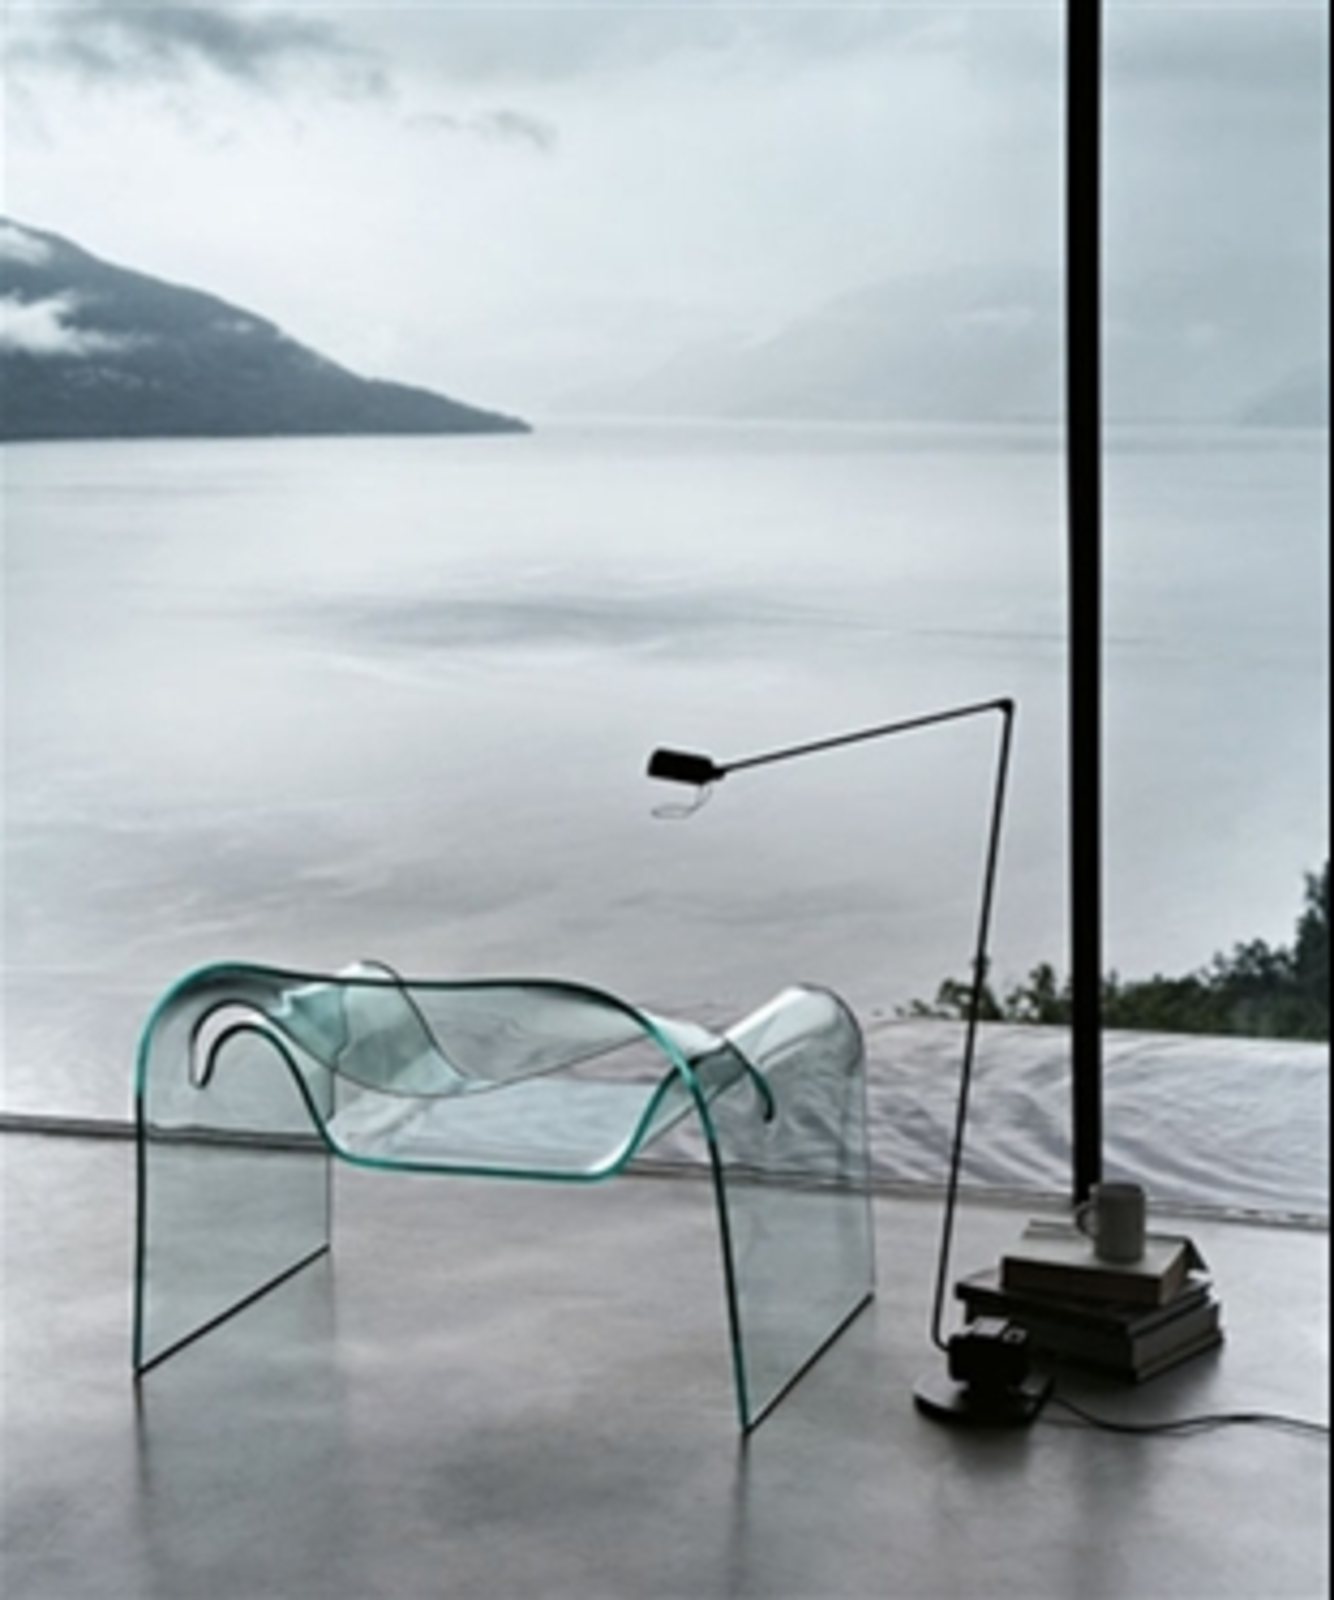 """Designed by Cini Boeri for Fiam, the half-inch-thick thick curved glass Ghost chair is well-suited for those who want their seating to disappear into the background.  Search """"joe colombo 4801 armchair"""" from Nearly Invisible Modern Furnishings"""